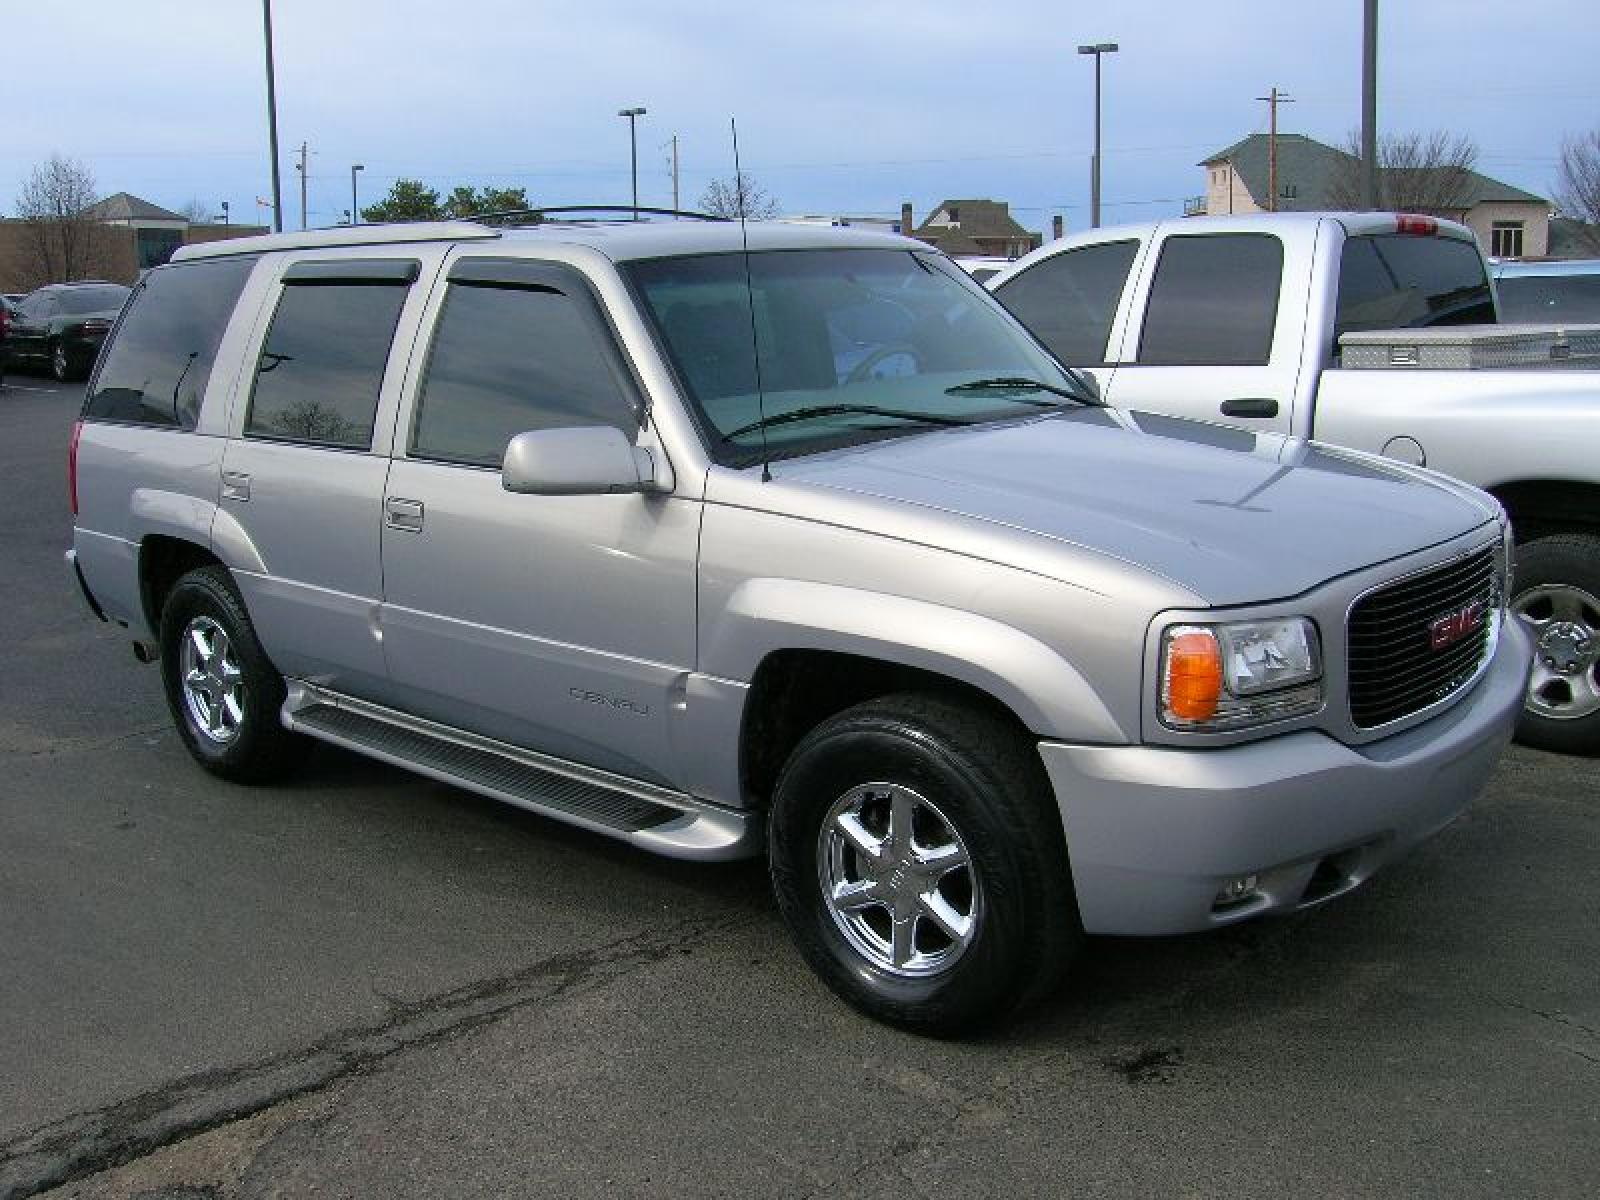 2000 gmc yukon information and photos zombiedrive. Black Bedroom Furniture Sets. Home Design Ideas